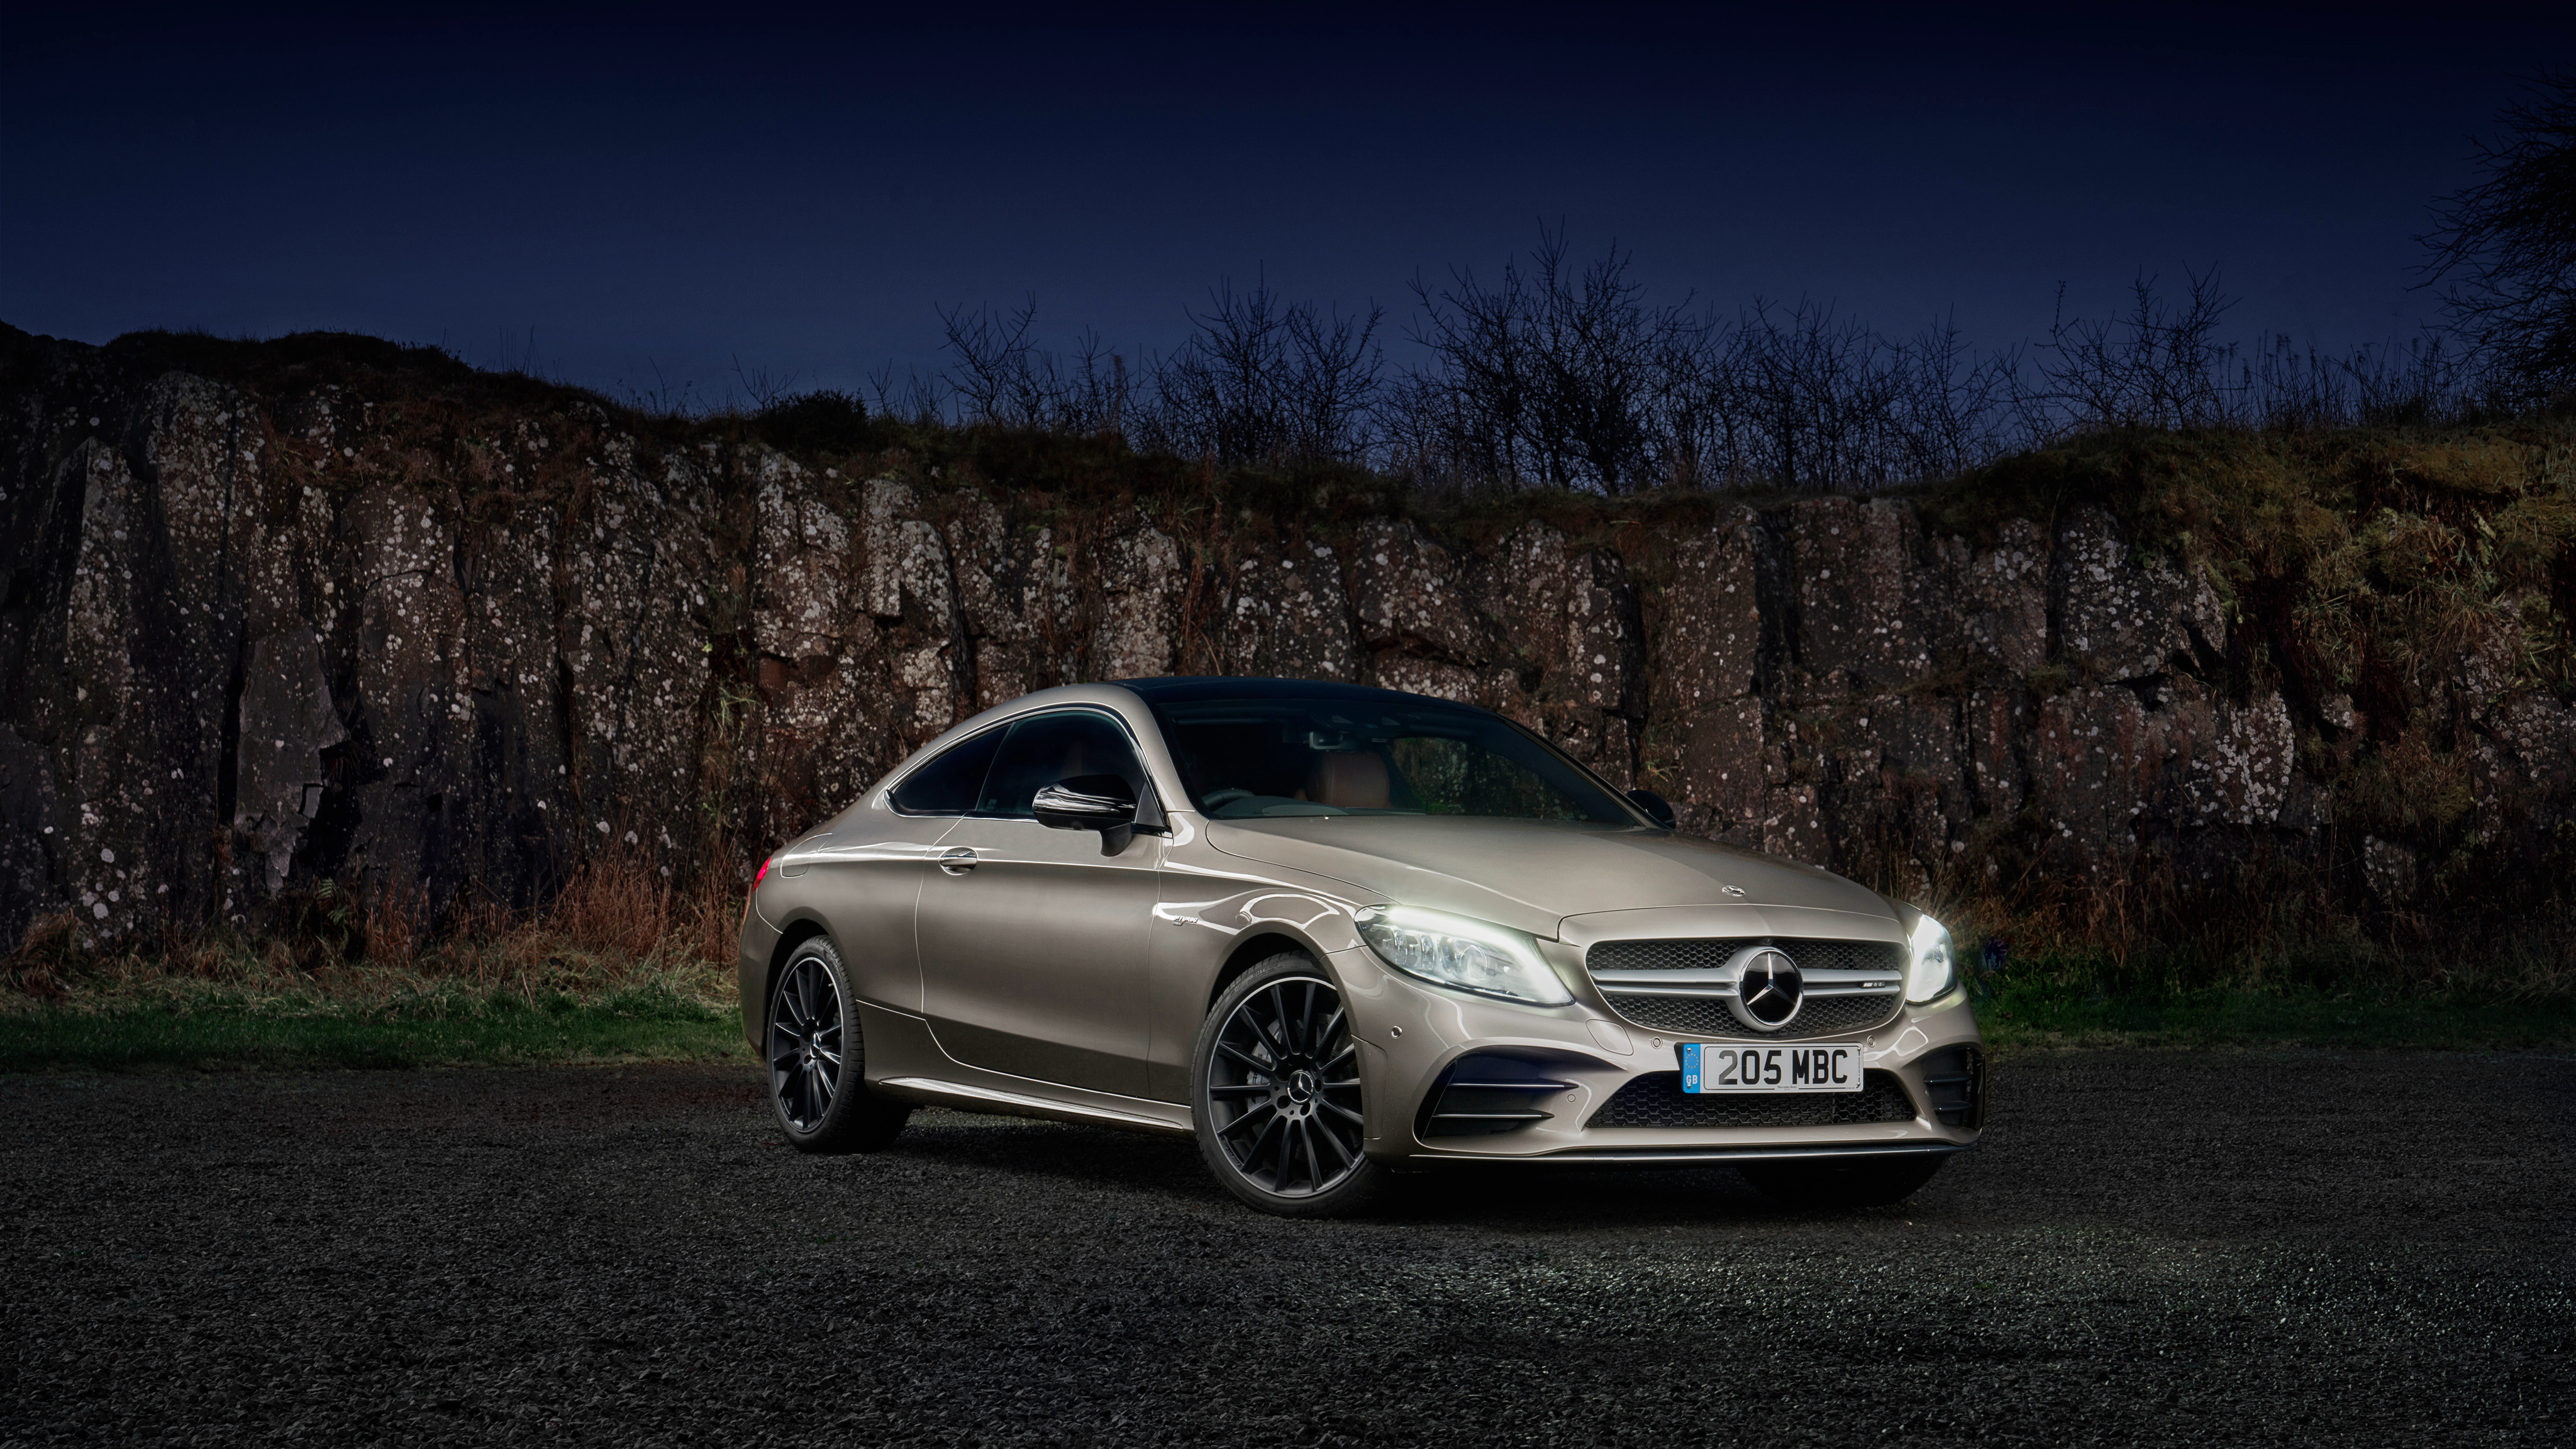 Mercedes Amg C 43 4matic Coupe 2019 4k 2 Wallpaper Hd Car Wallpapers Id 11797